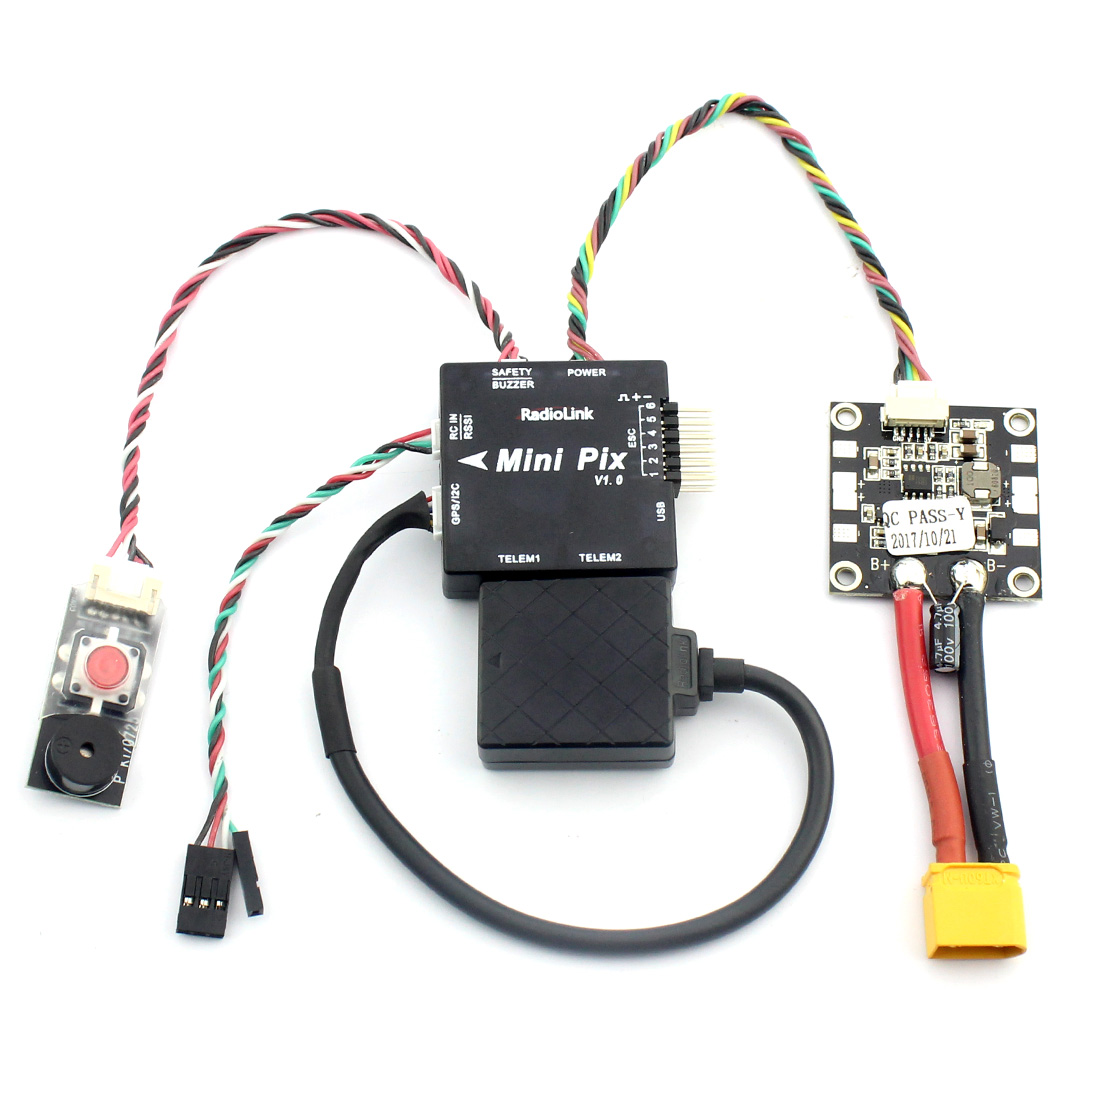 Image 2 - Radiolink Mini PIX M8N GPS Flight Control Vibration Damping by Software Atitude Hold for RC Racer Drone Multicopter Quadcopter-in Parts & Accessories from Toys & Hobbies